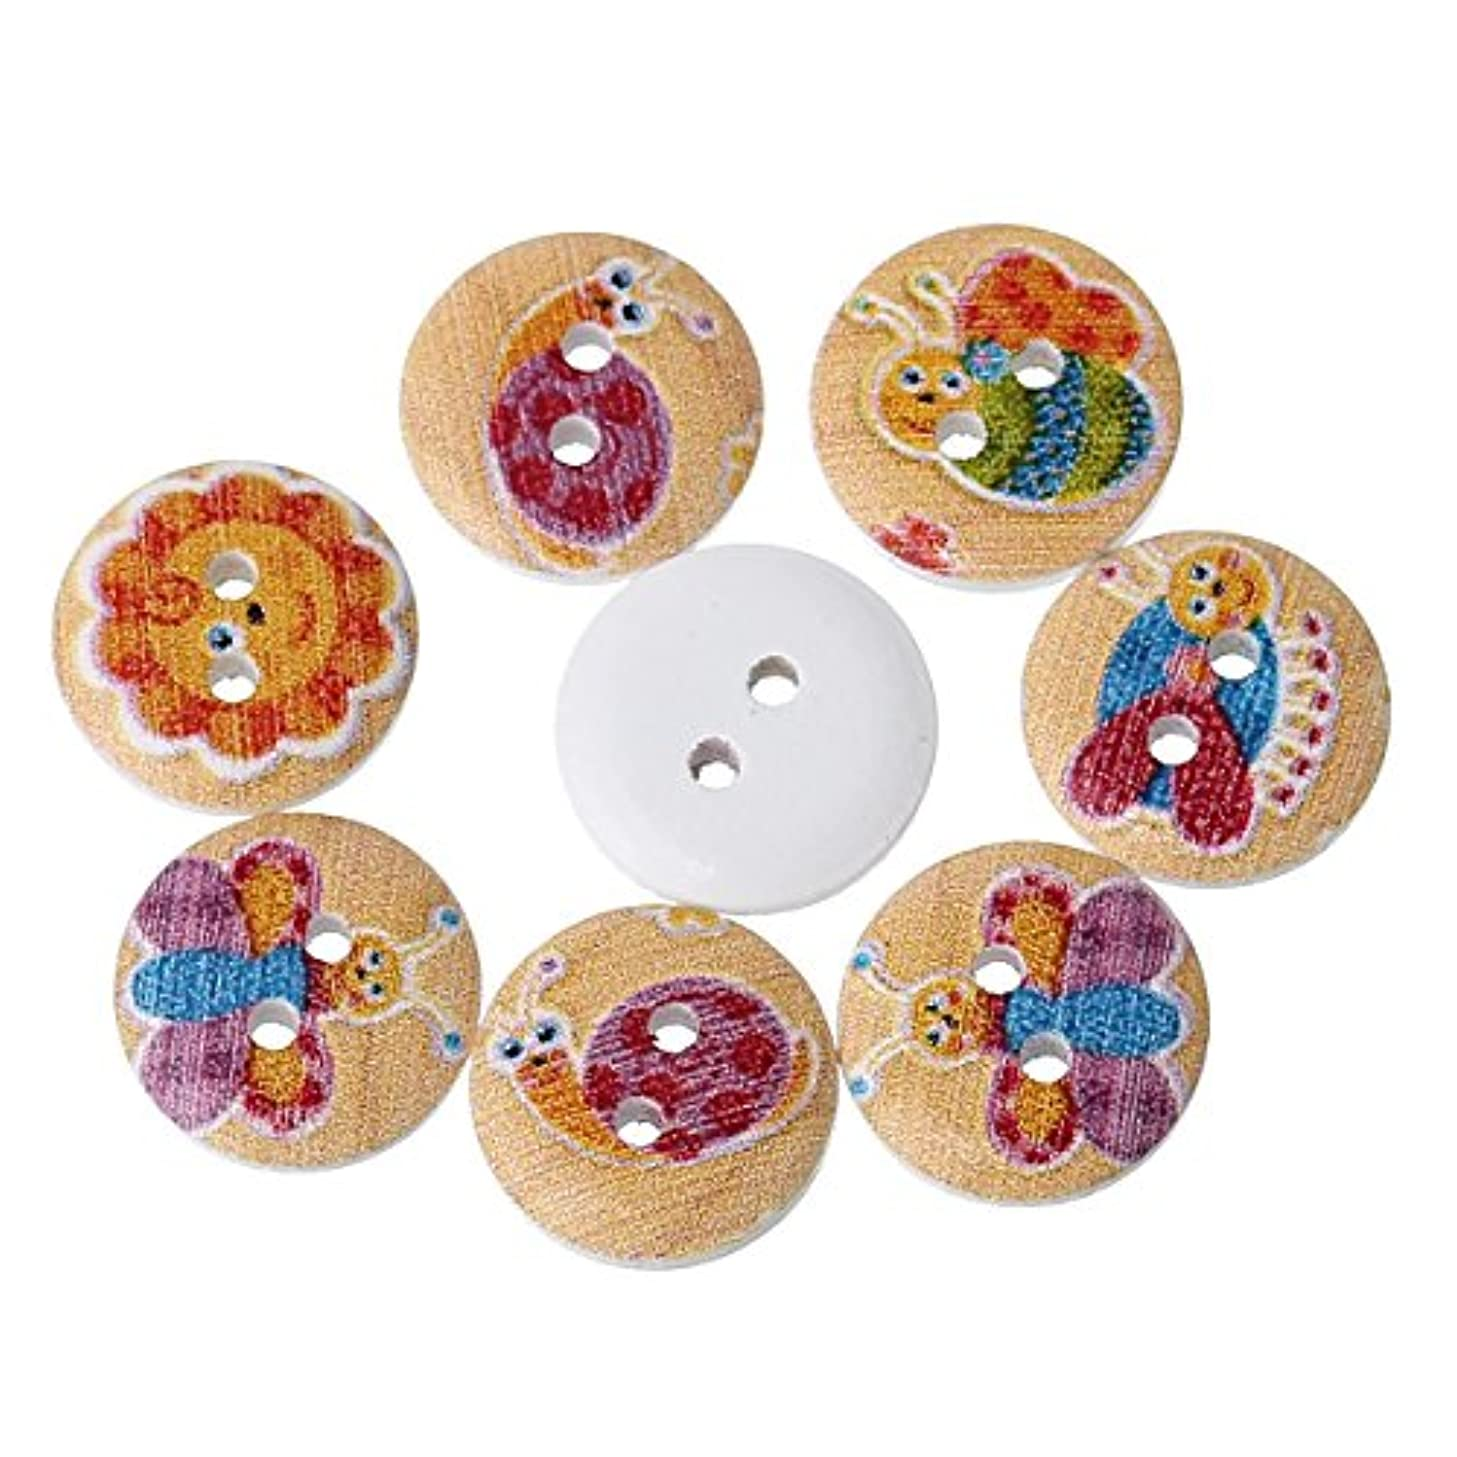 PEPPERLONELY Brand 100PC Insects Mixed 2 Hole Scrapbooking Sewing Wood Buttons 15mm(5/8 Inch)